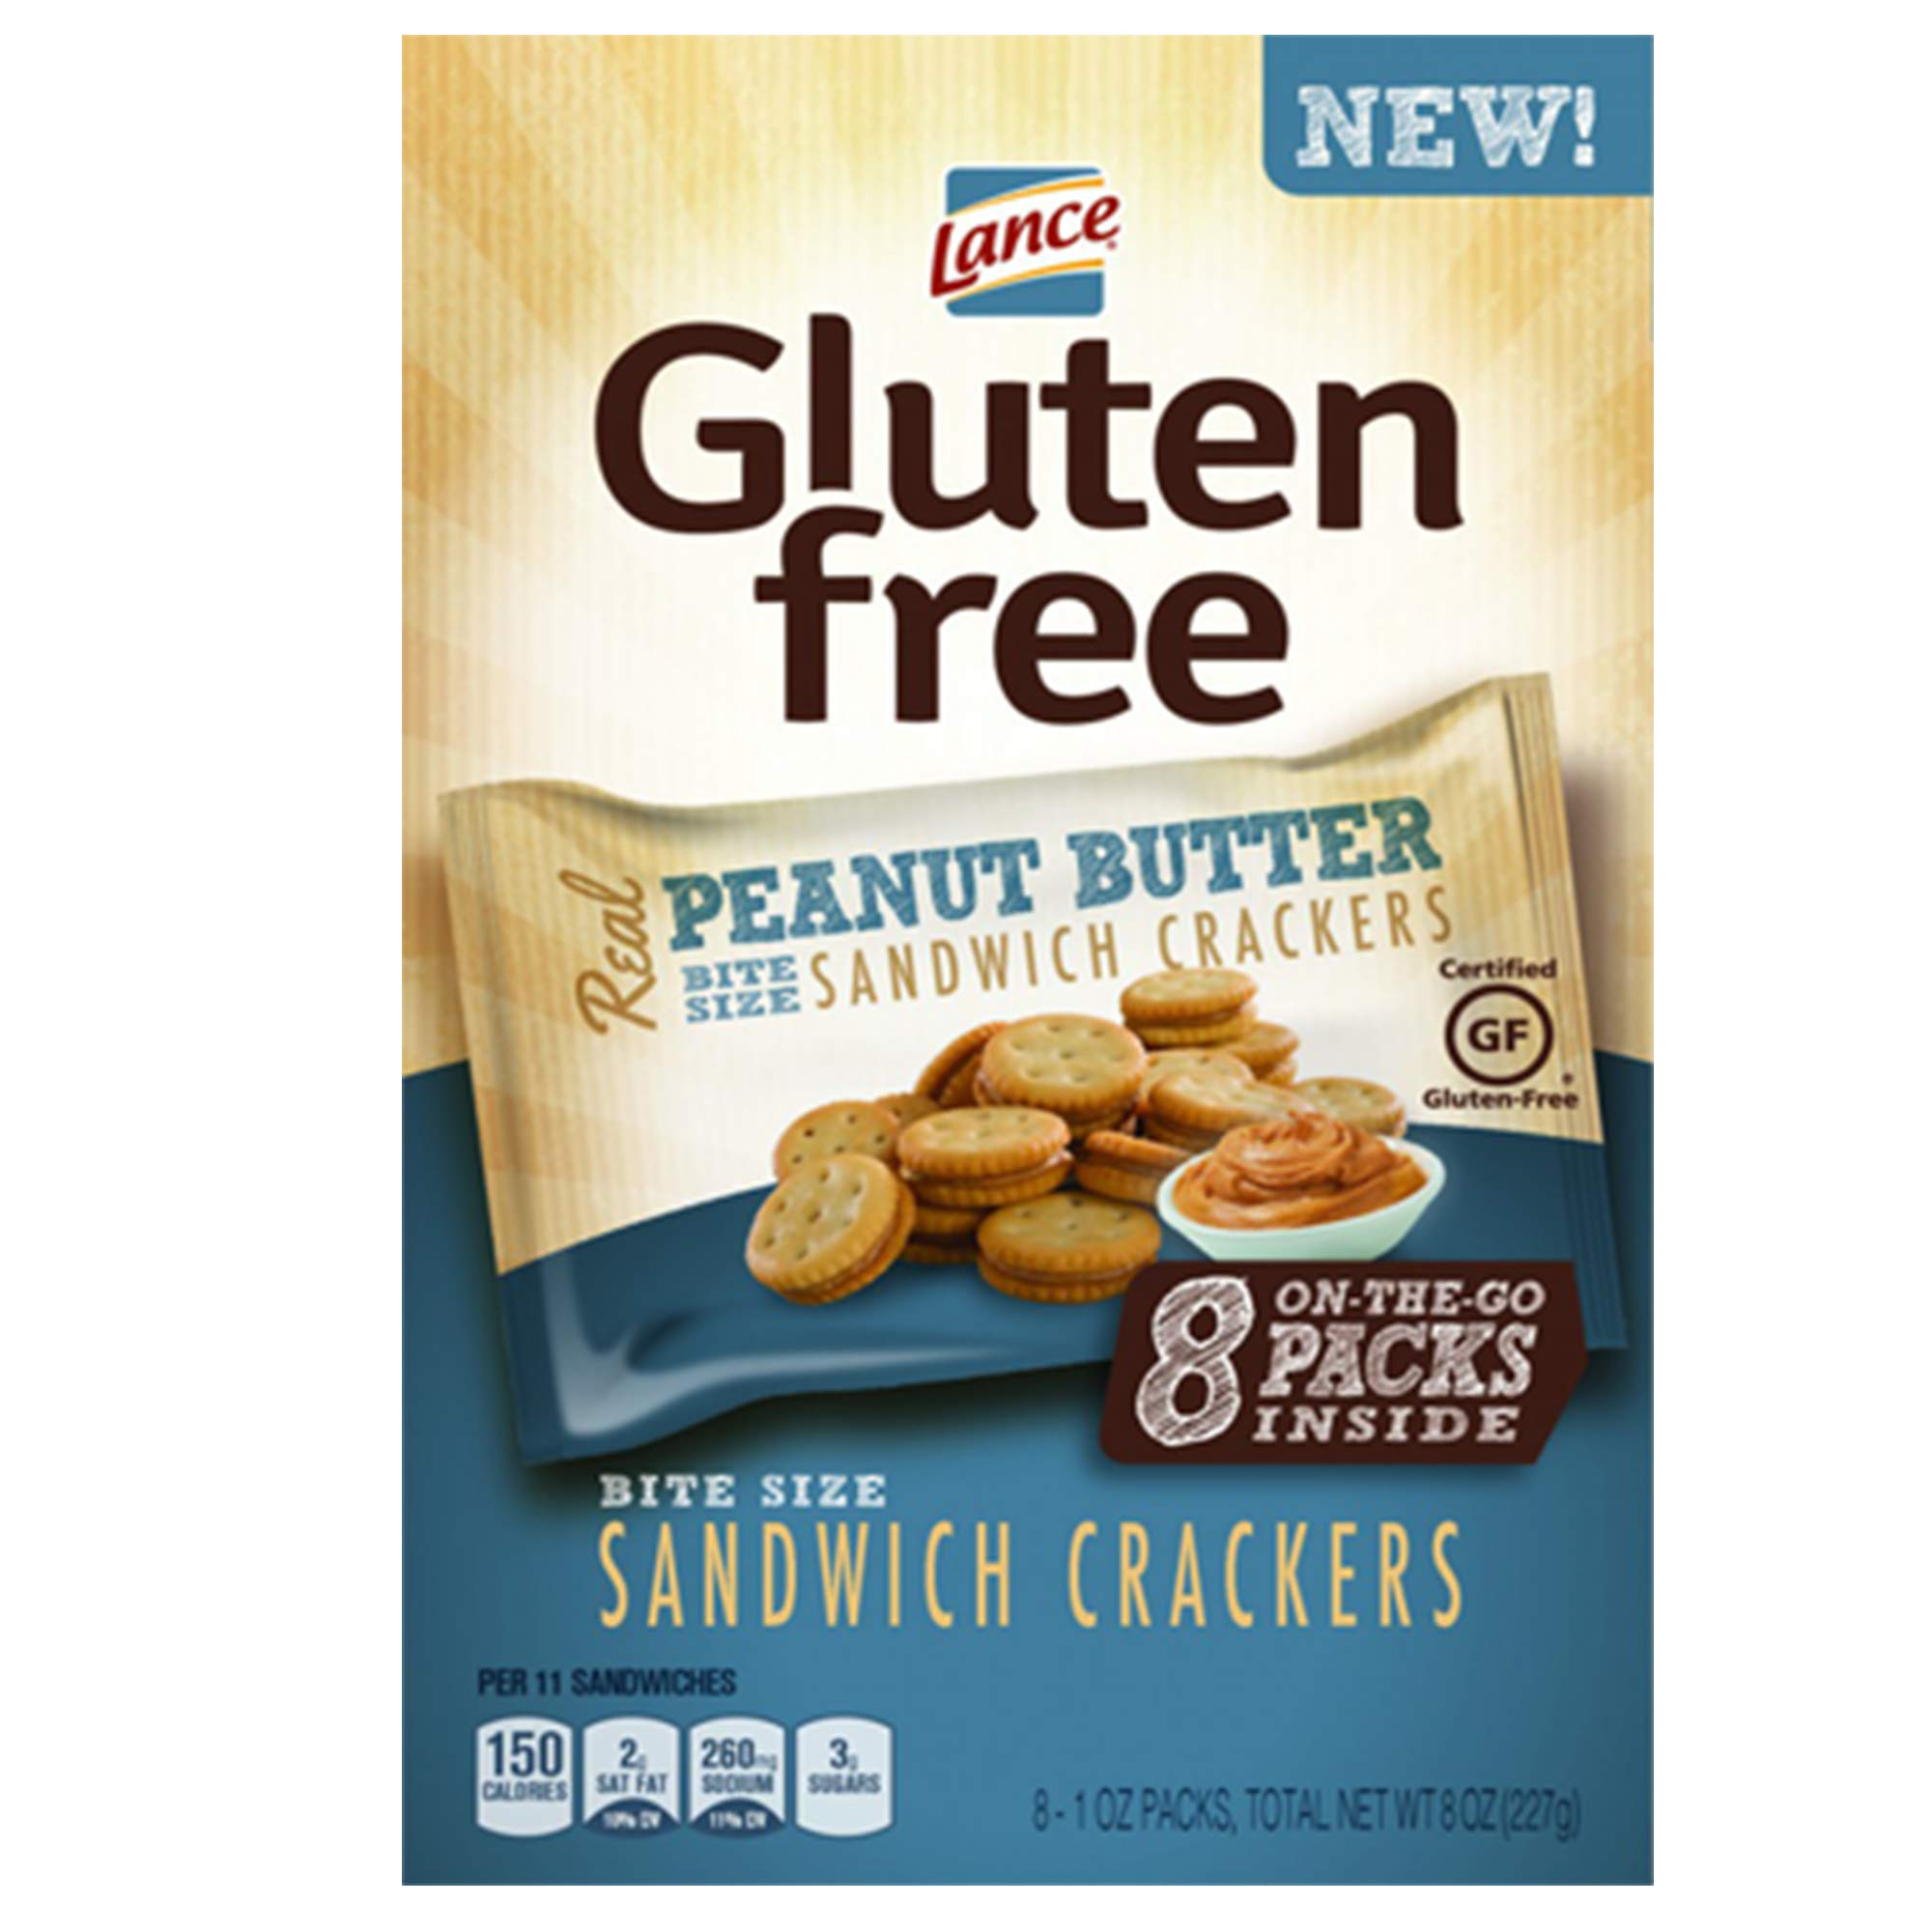 Lance Gluten Free Peanut Butter Sandwich Crackers, 8 Count of 1 Oz. Bags by Lance